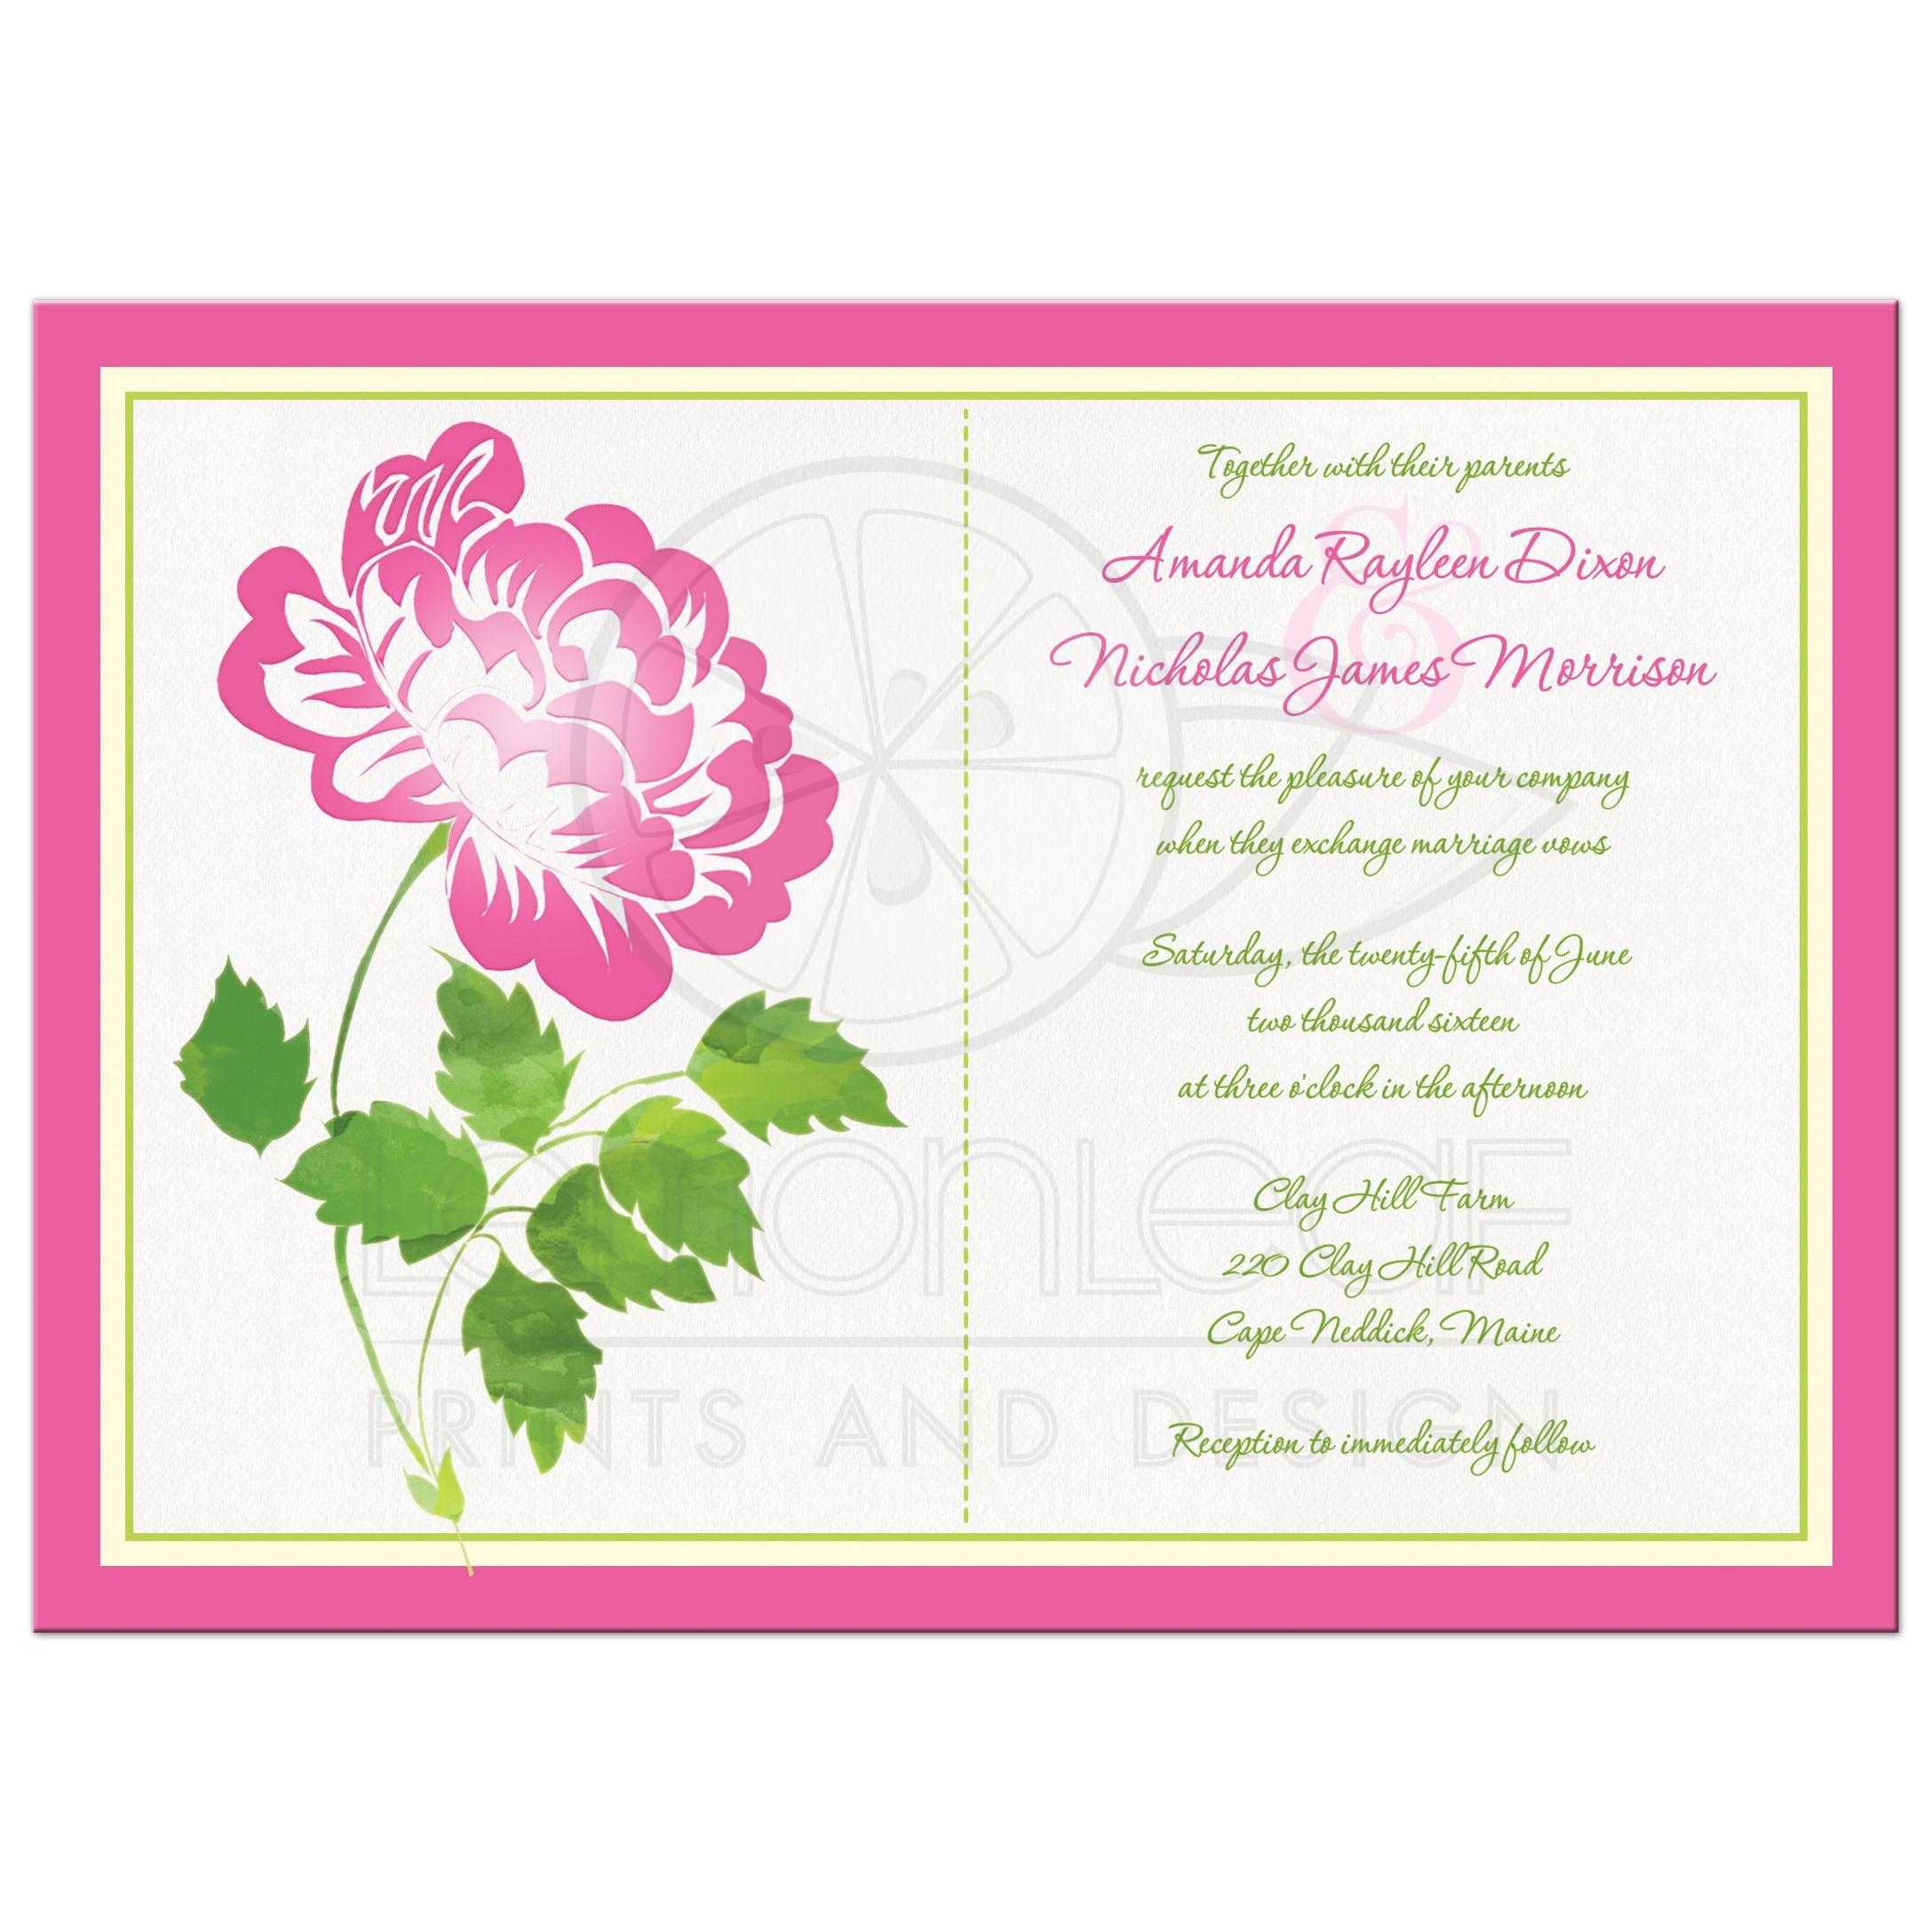 Wedding Invitation | Pink, Green, Ivory and White Floral